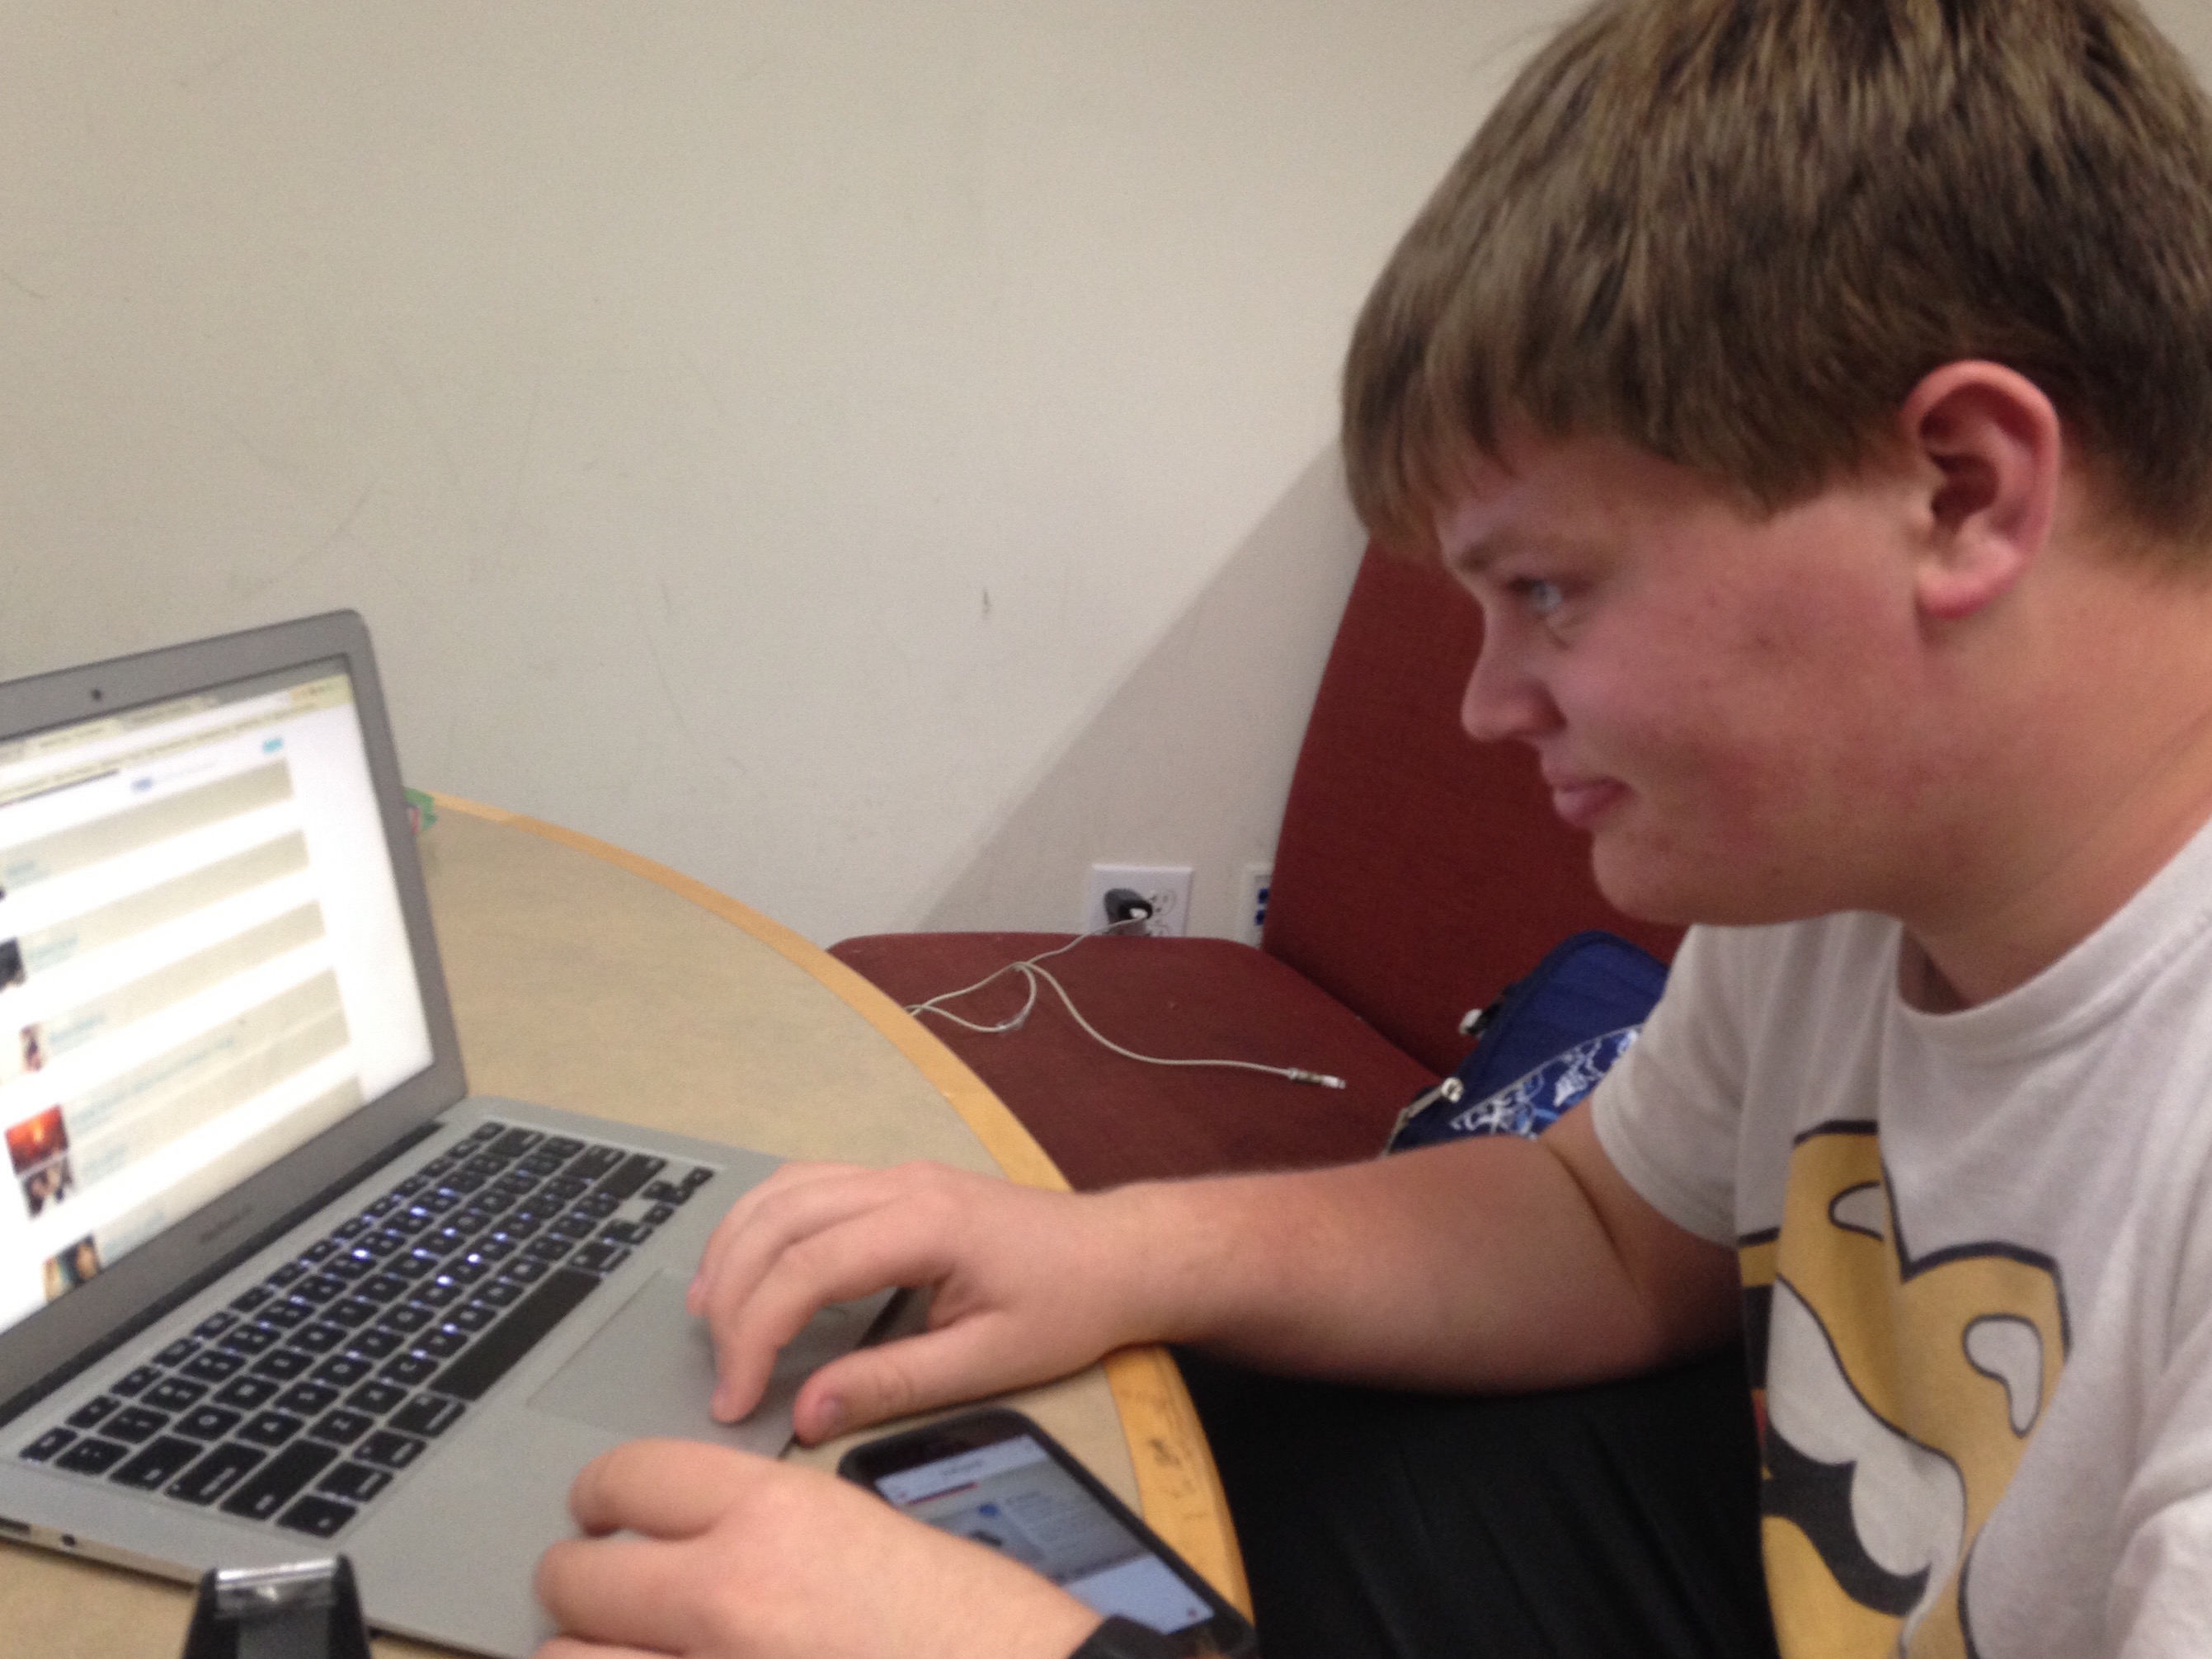 Sophomore William Yonts scrolls down his Facebook feed. Many advertisements, targeted directly to him, appear.